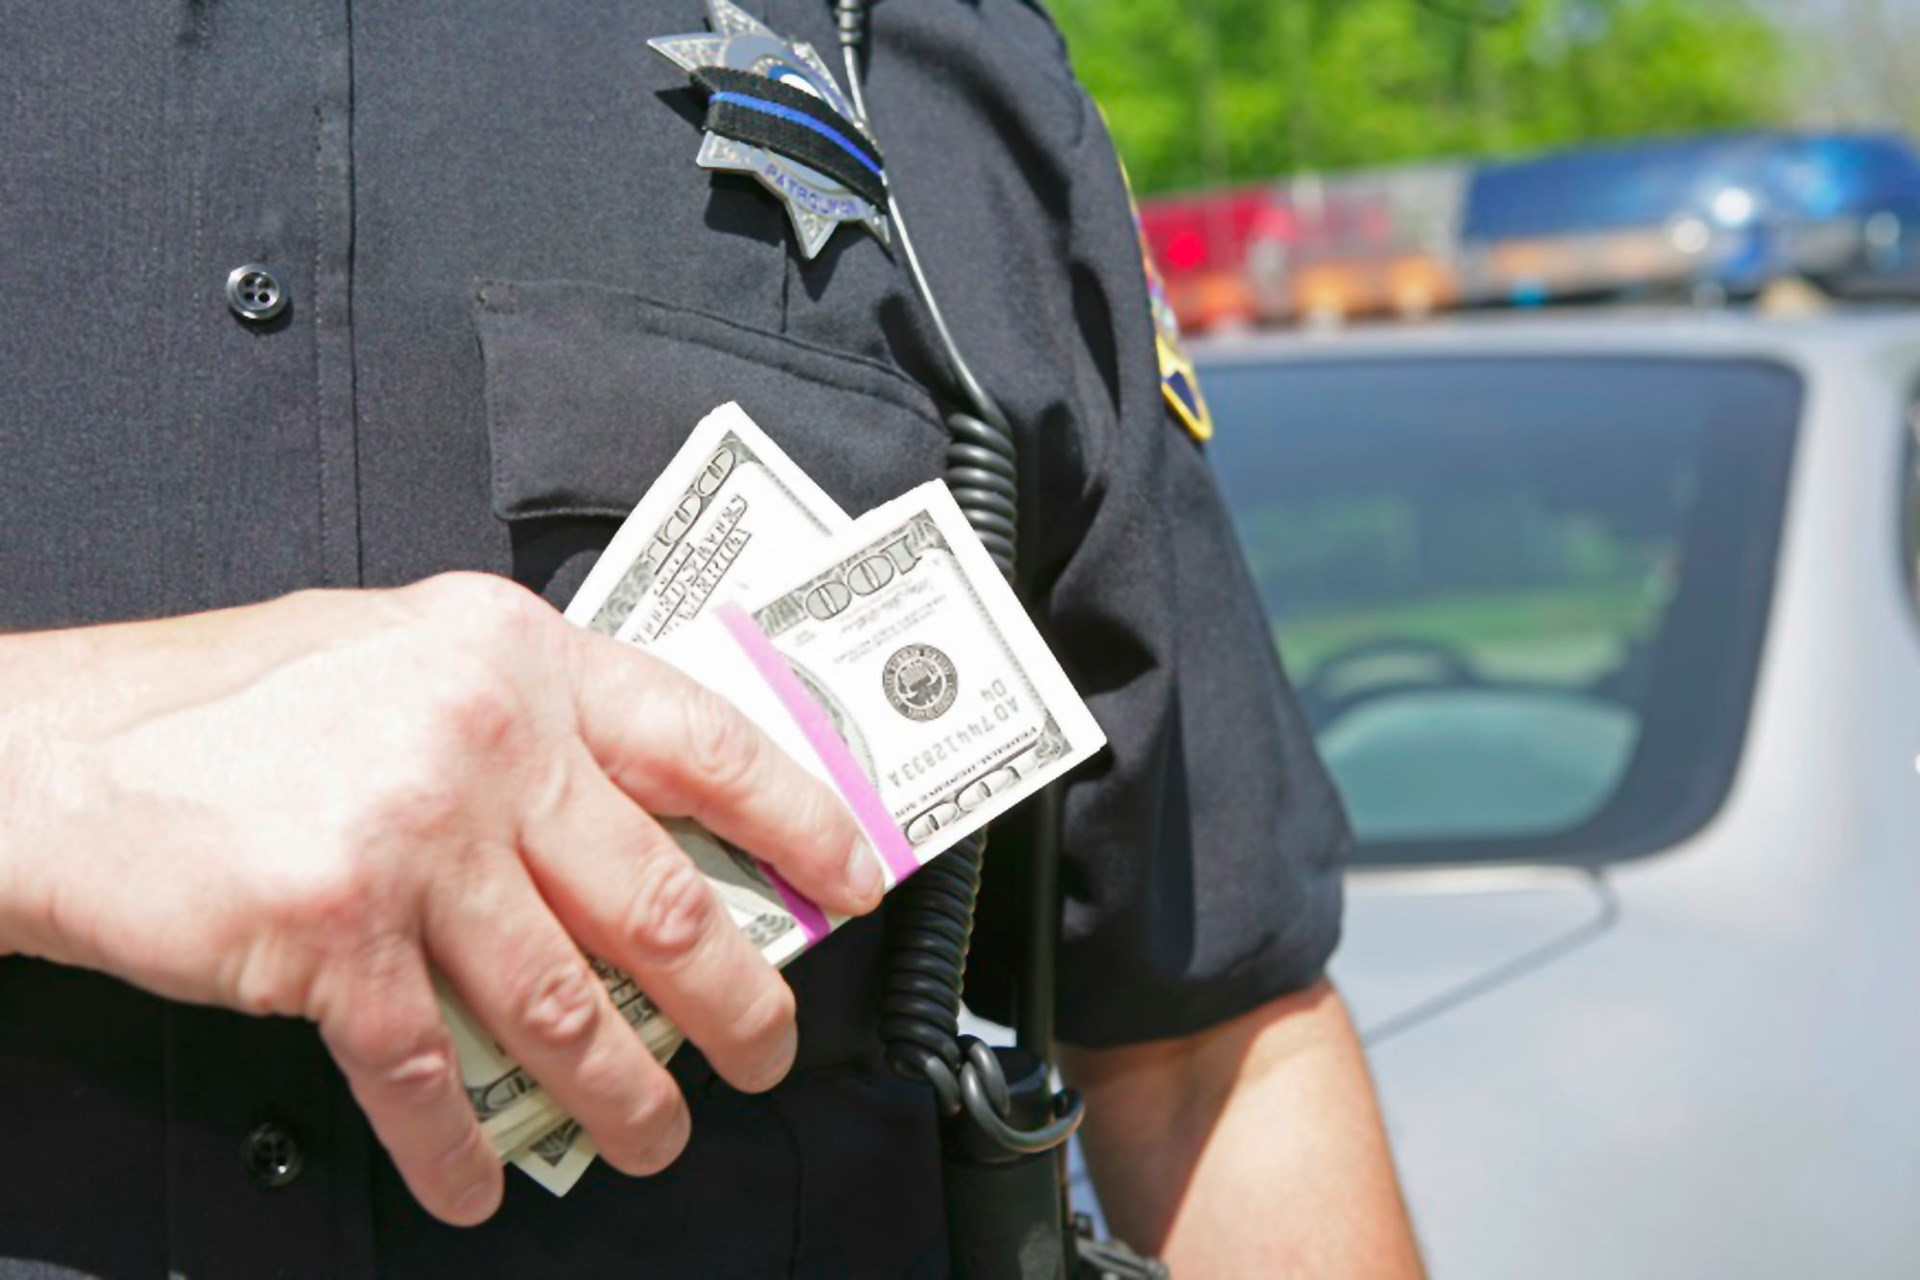 We'd Return Your Seized Property, Except We Already Sold It